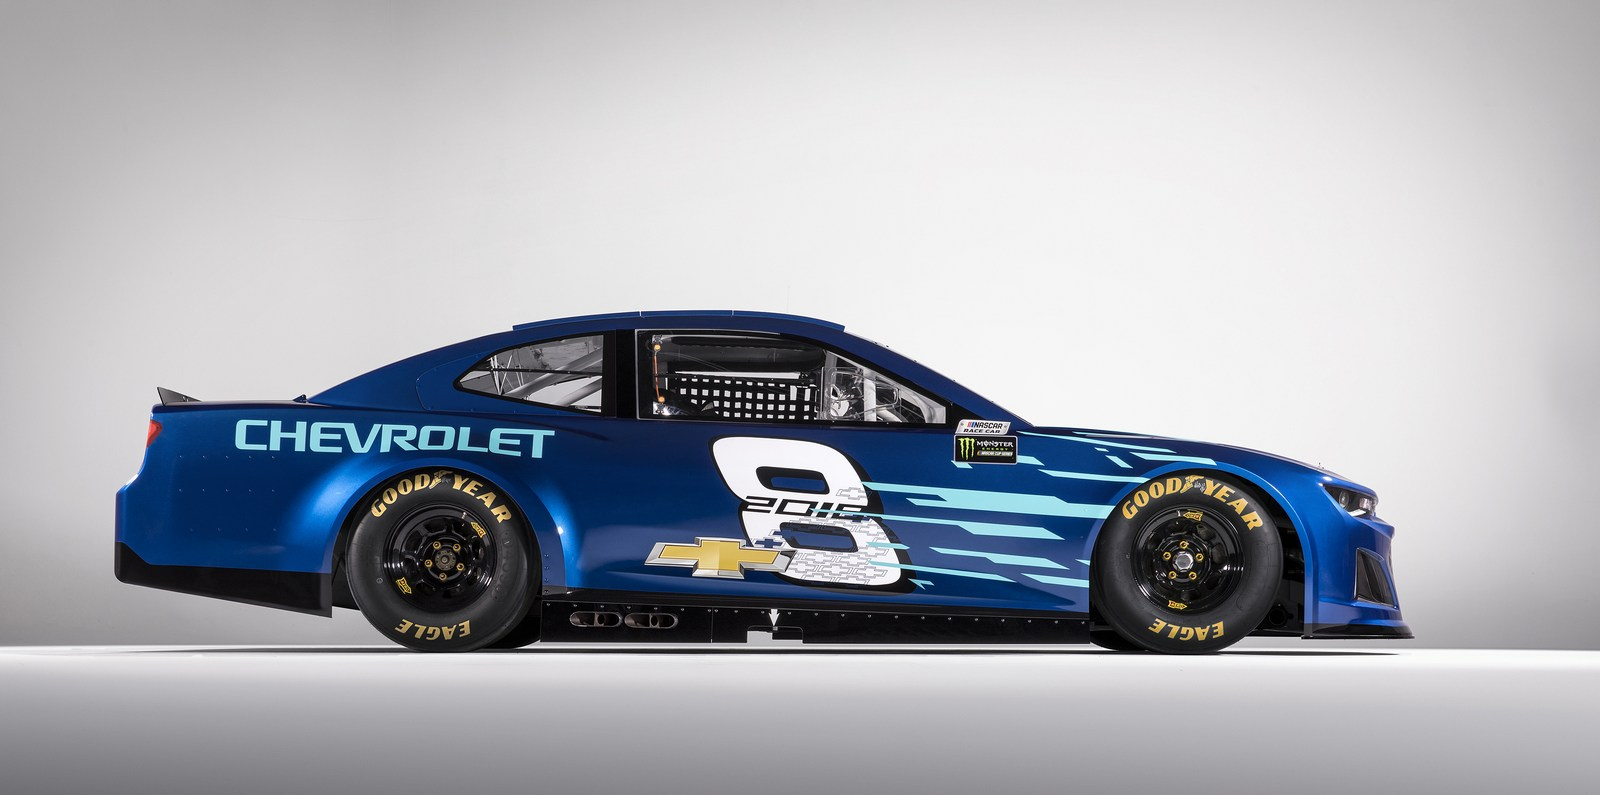 2018 Chevrolet Camaro Zl1 Race Car Unveiled For The